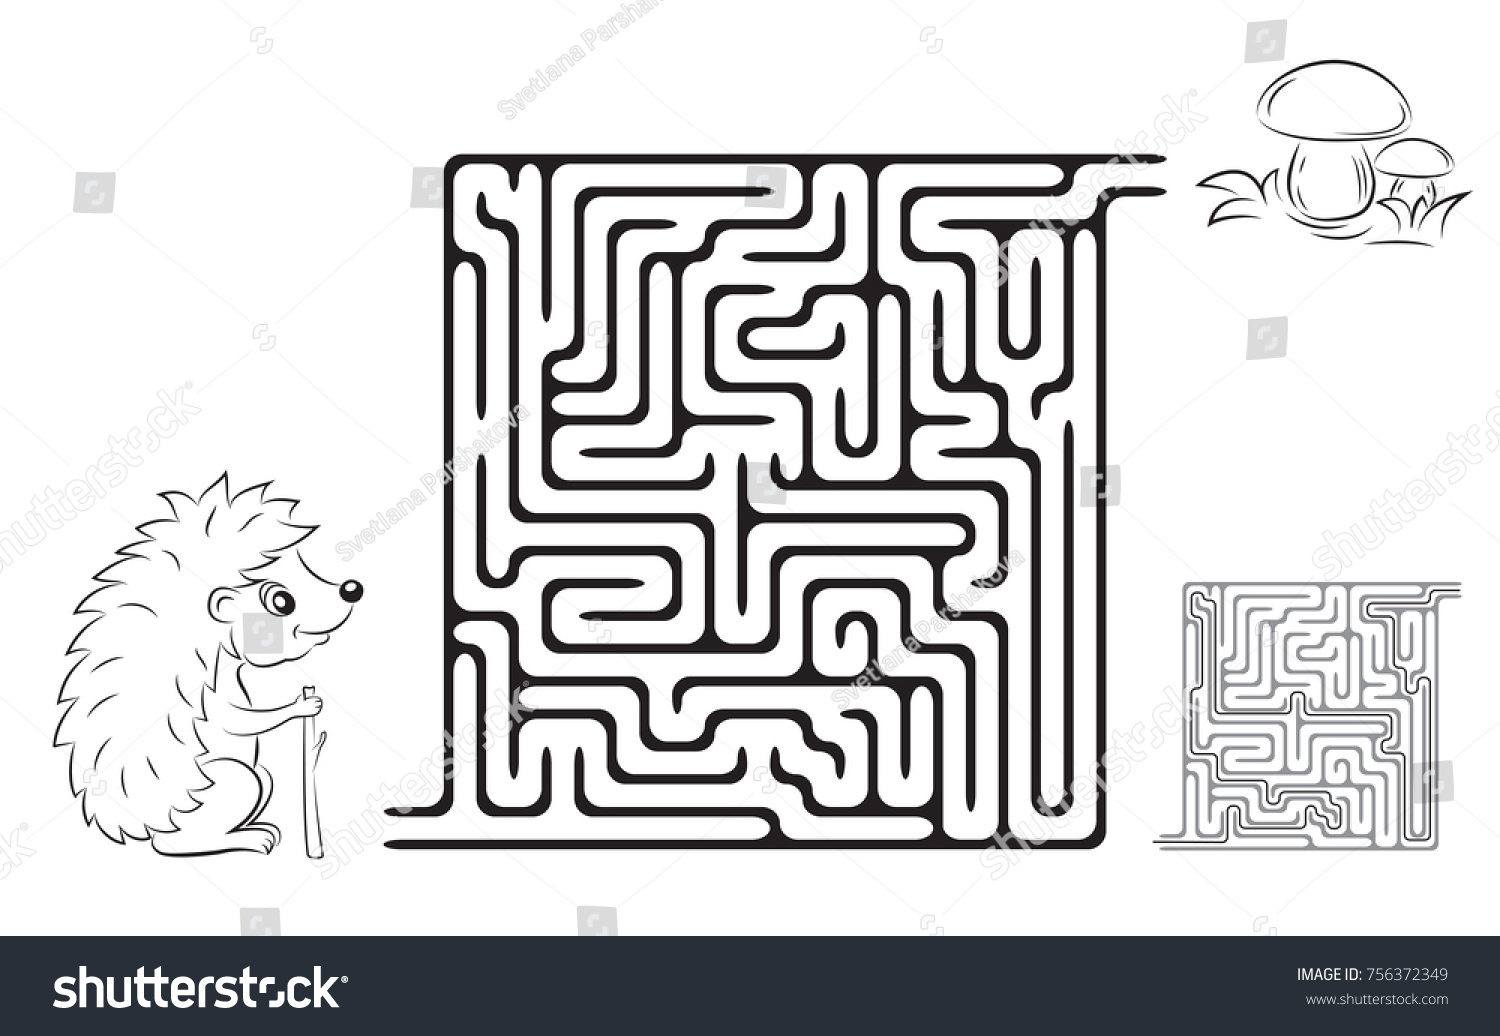 Maze Game Coloring Page Kids Pictures Stock Vector 756372349 ...